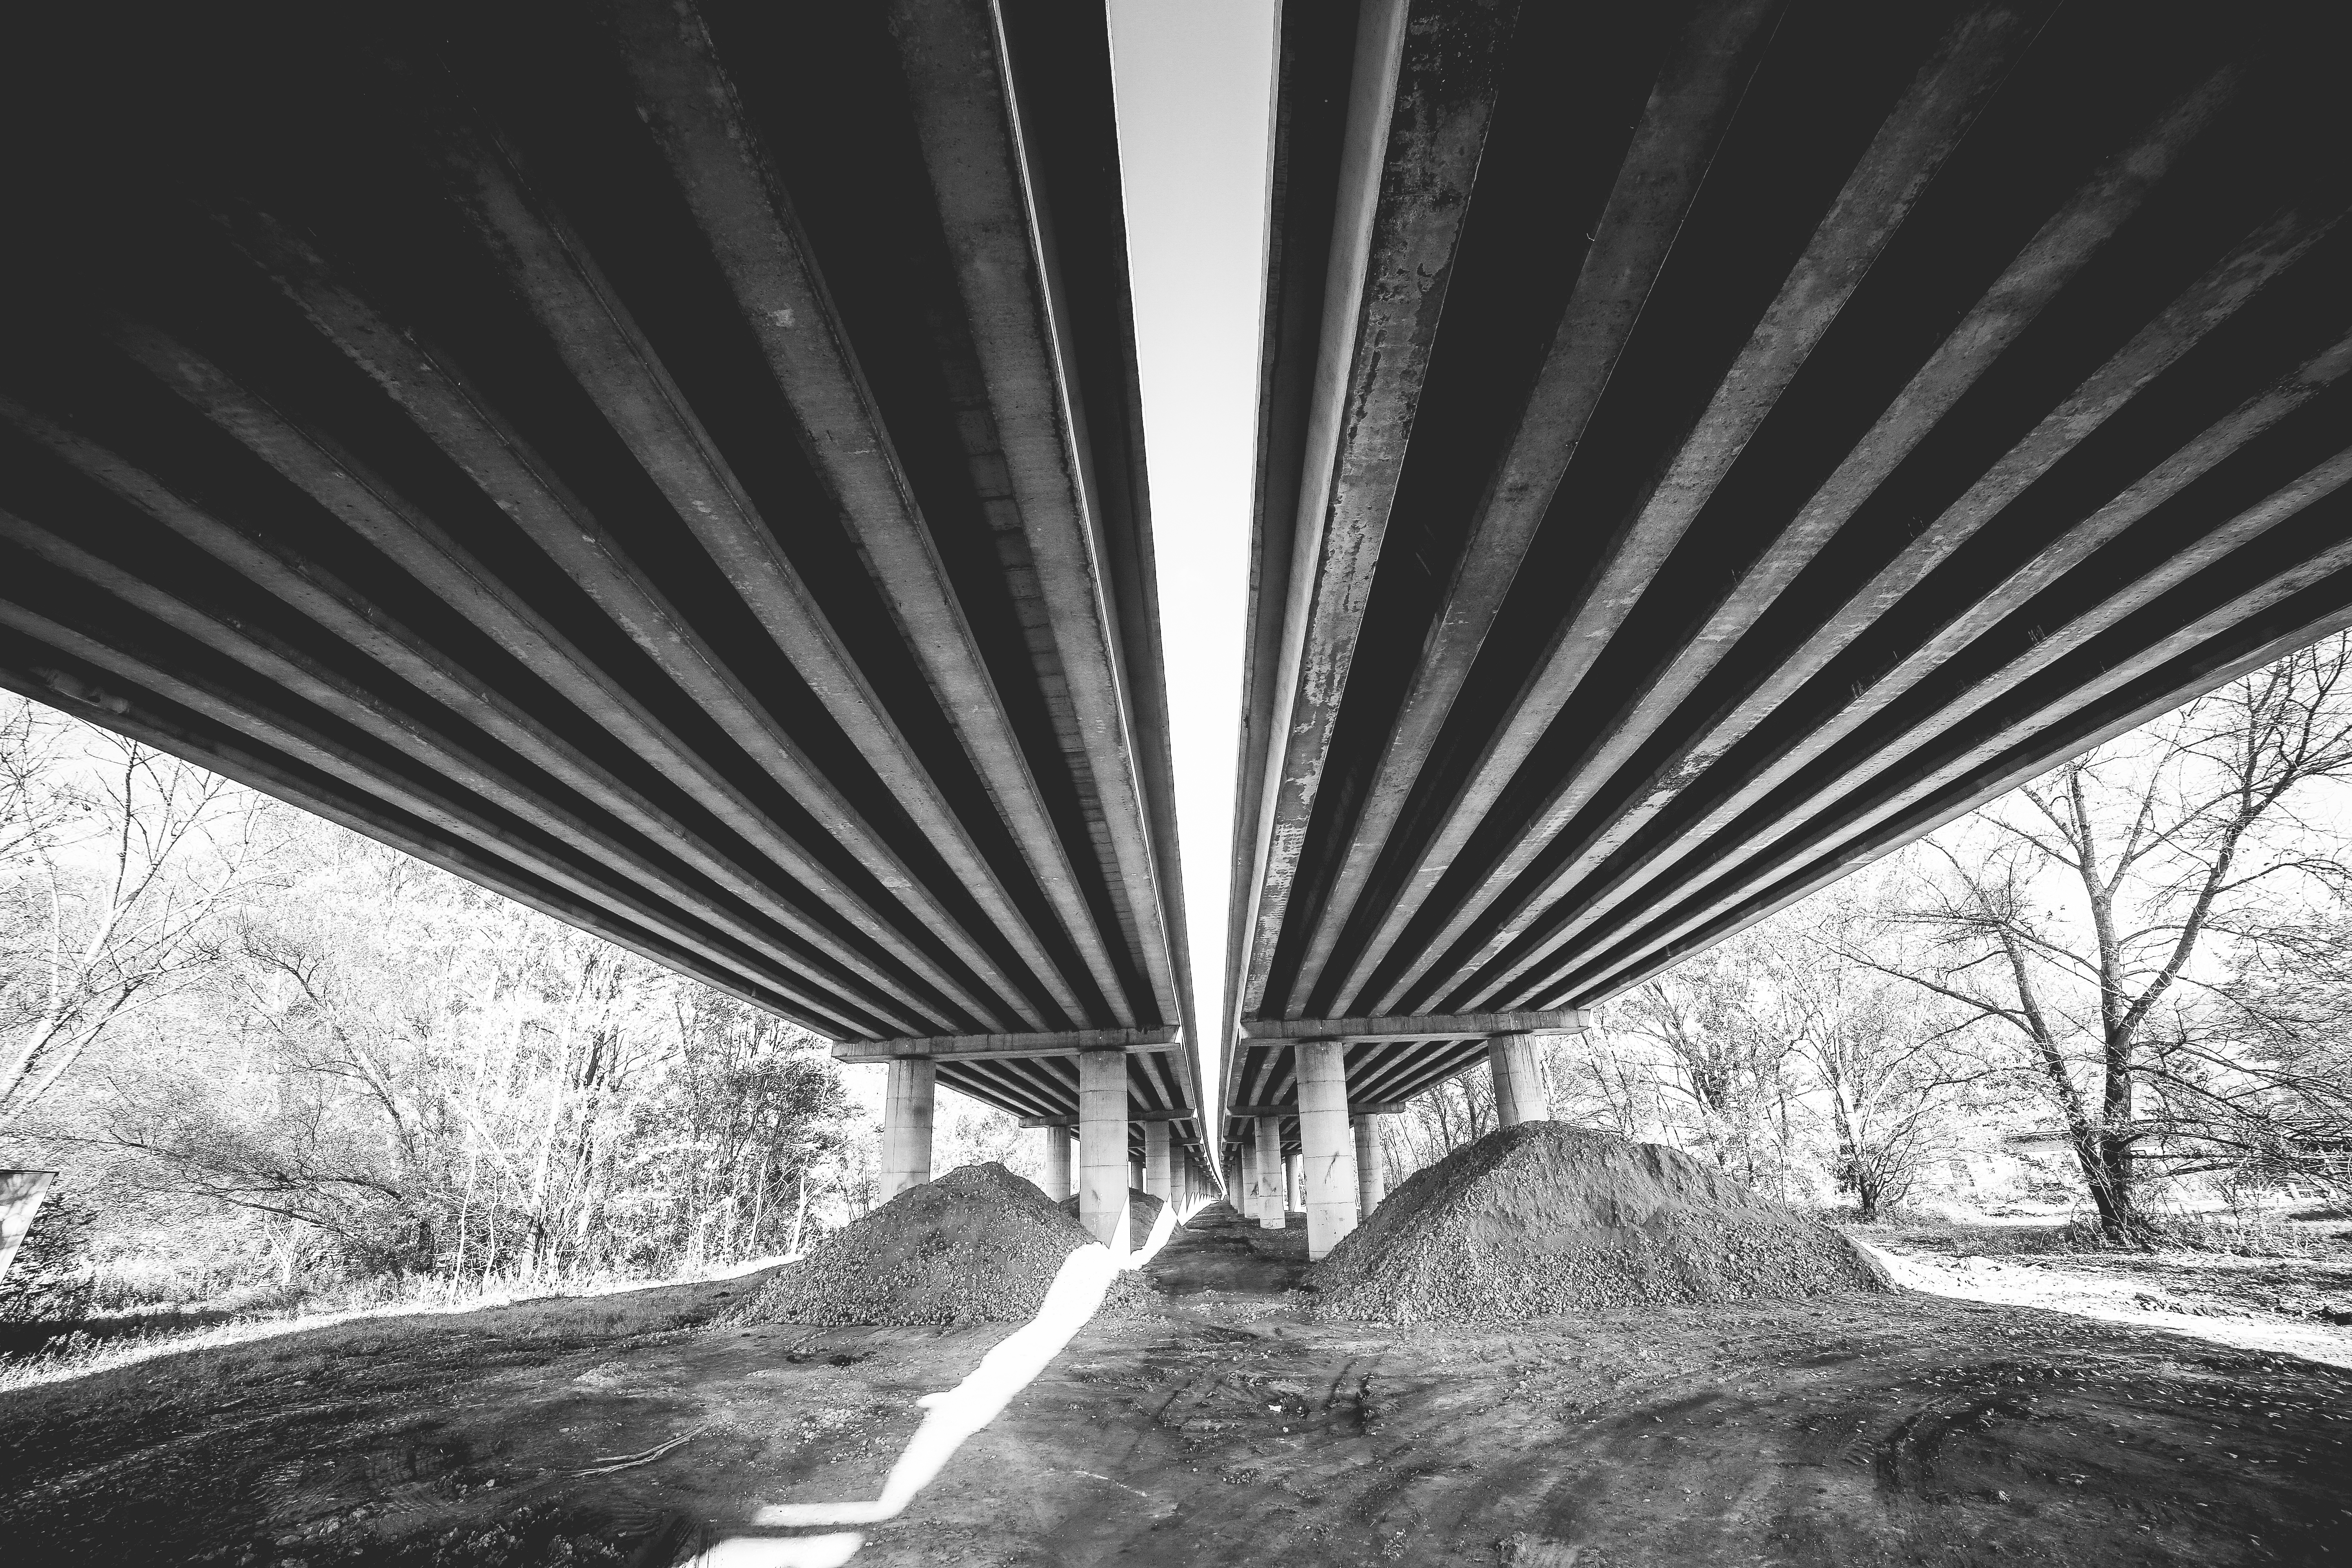 Two Long Ways: Under Highway Free Stock Photo